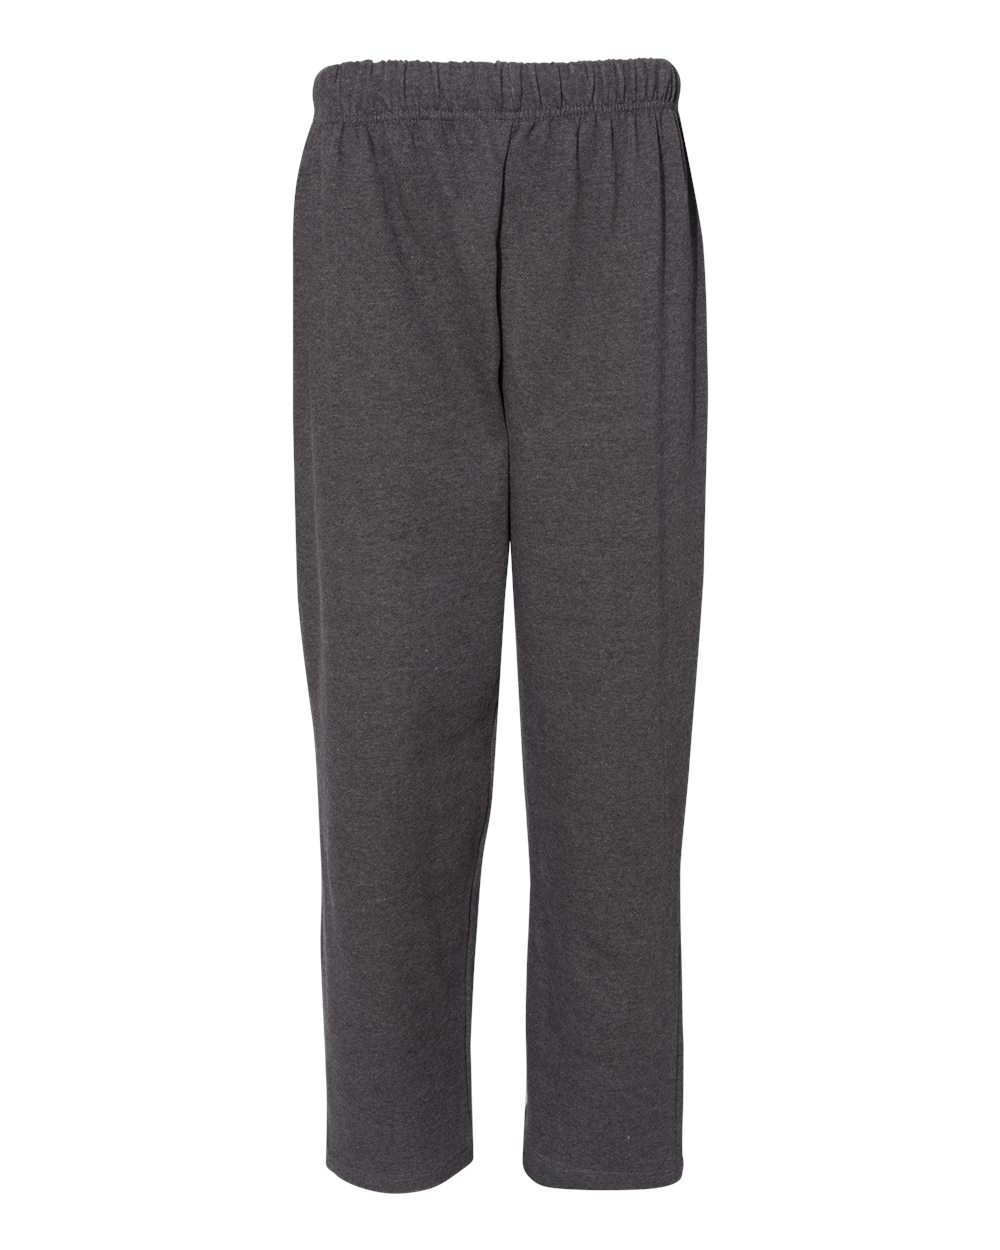 C2-Sport-Mens-Open-Bottom-Sweatpants-With-Pockets-5577-up-to-4XL thumbnail 9